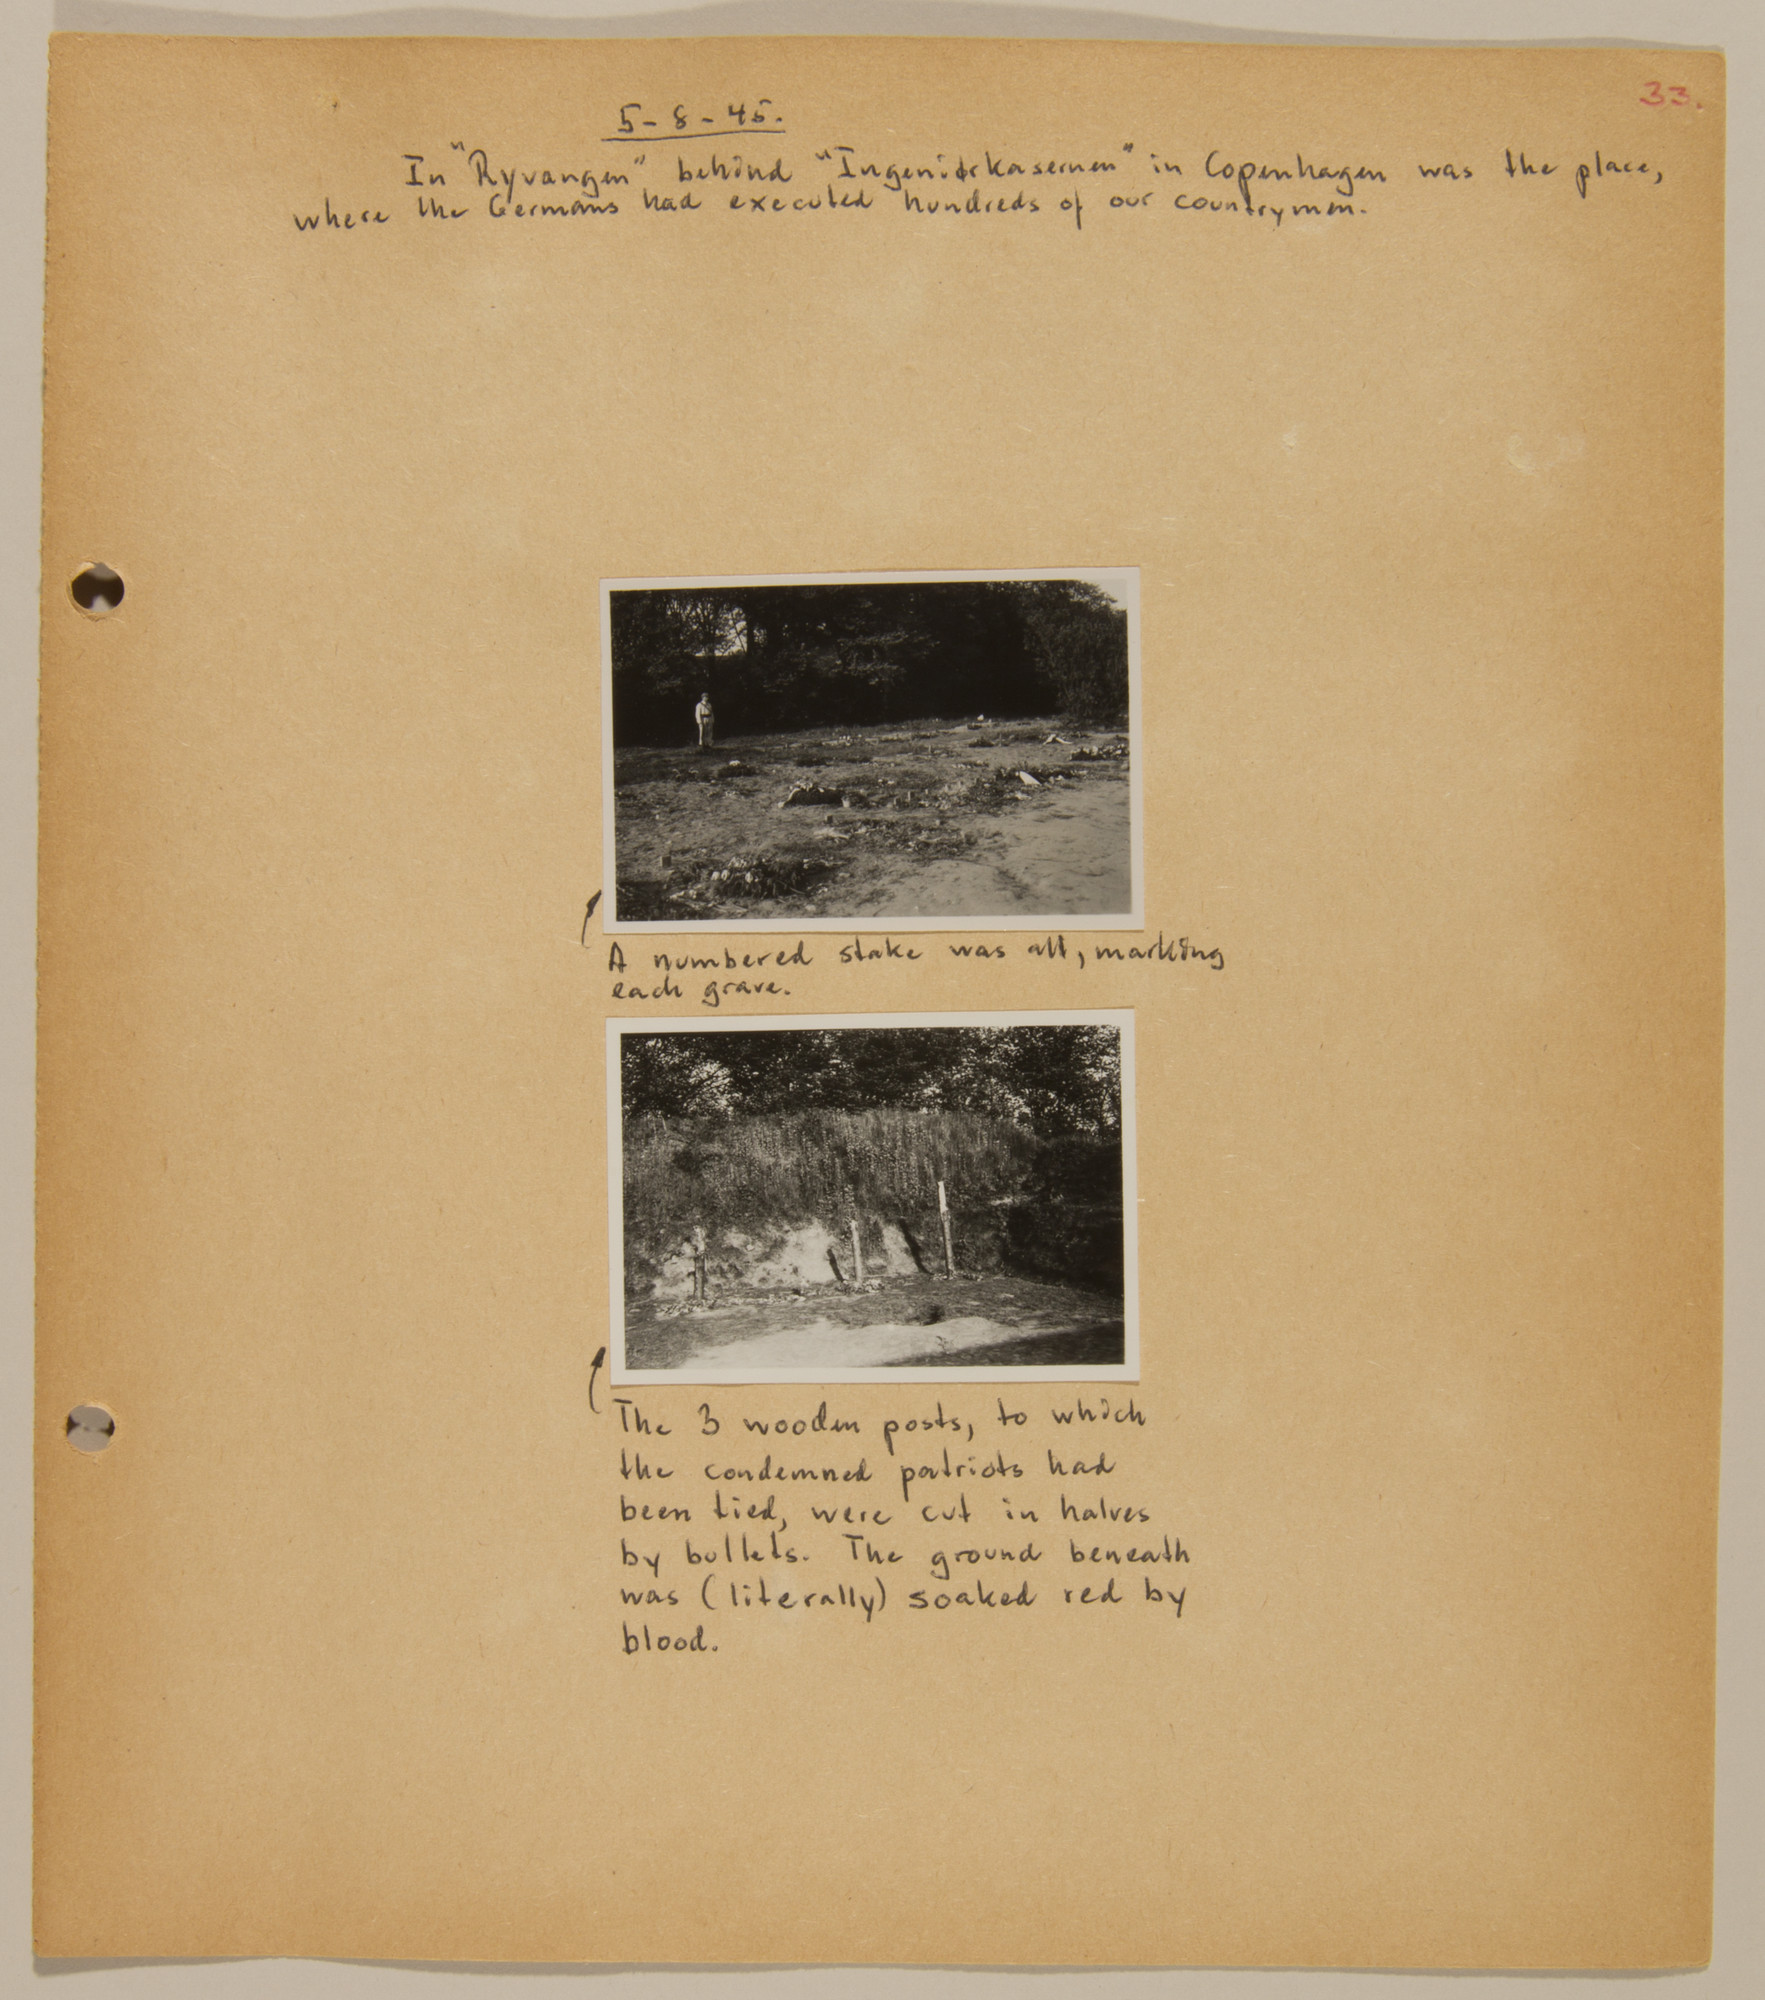 Page from volume five of a set of scrapbooks compiled by Bjorn Sibbern, a Danish policeman and resistance member, documenting the German occupation of Denmark.  This page contains two photographs of the site of German executions during the war.